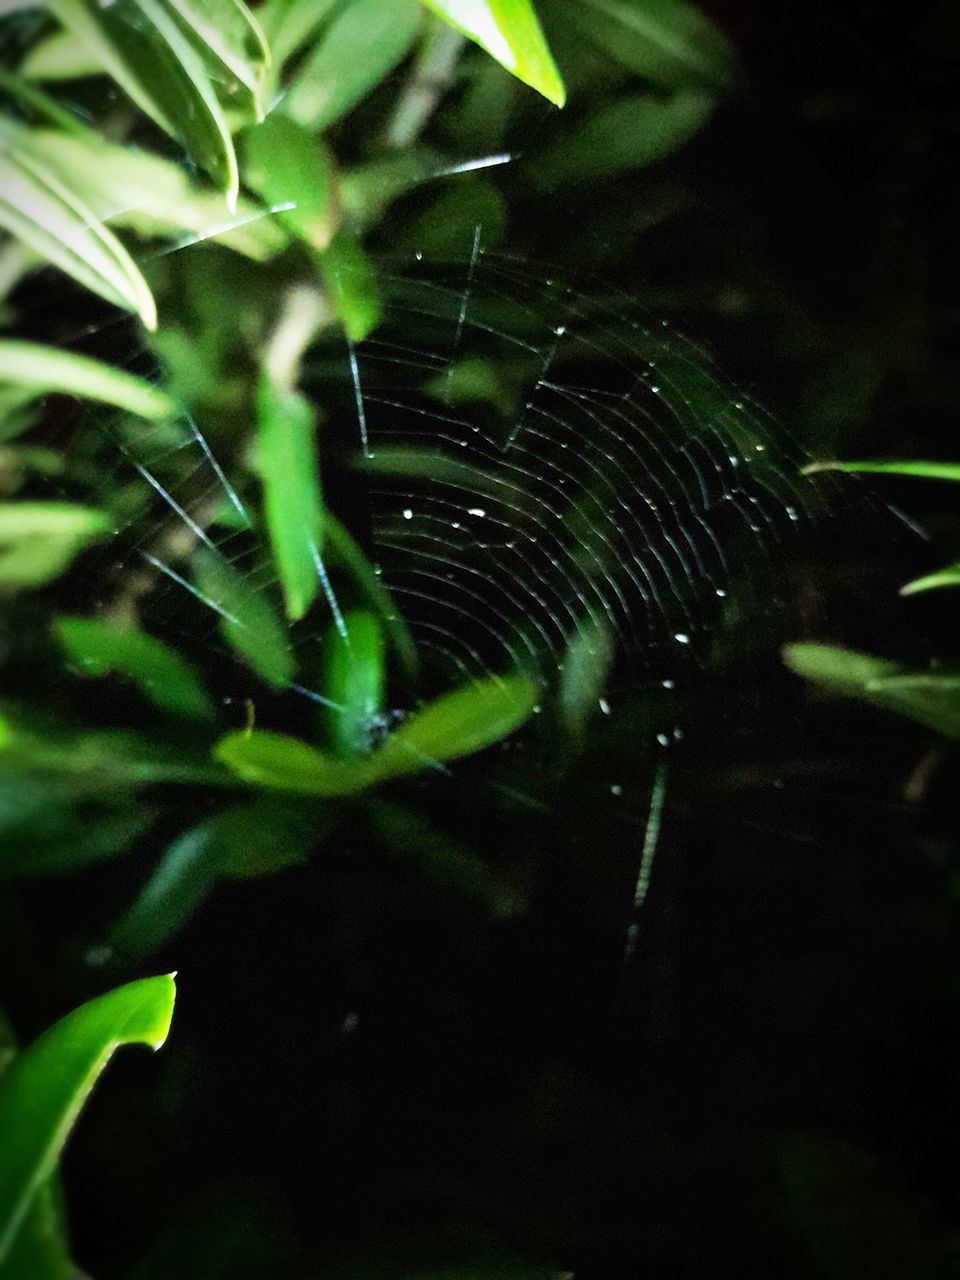 nature, growth, plant, spider web, green color, outdoors, no people, one animal, web, animal themes, beauty in nature, close-up, water, leaf, fragility, day, animals in the wild, spider, focus on foreground, freshness